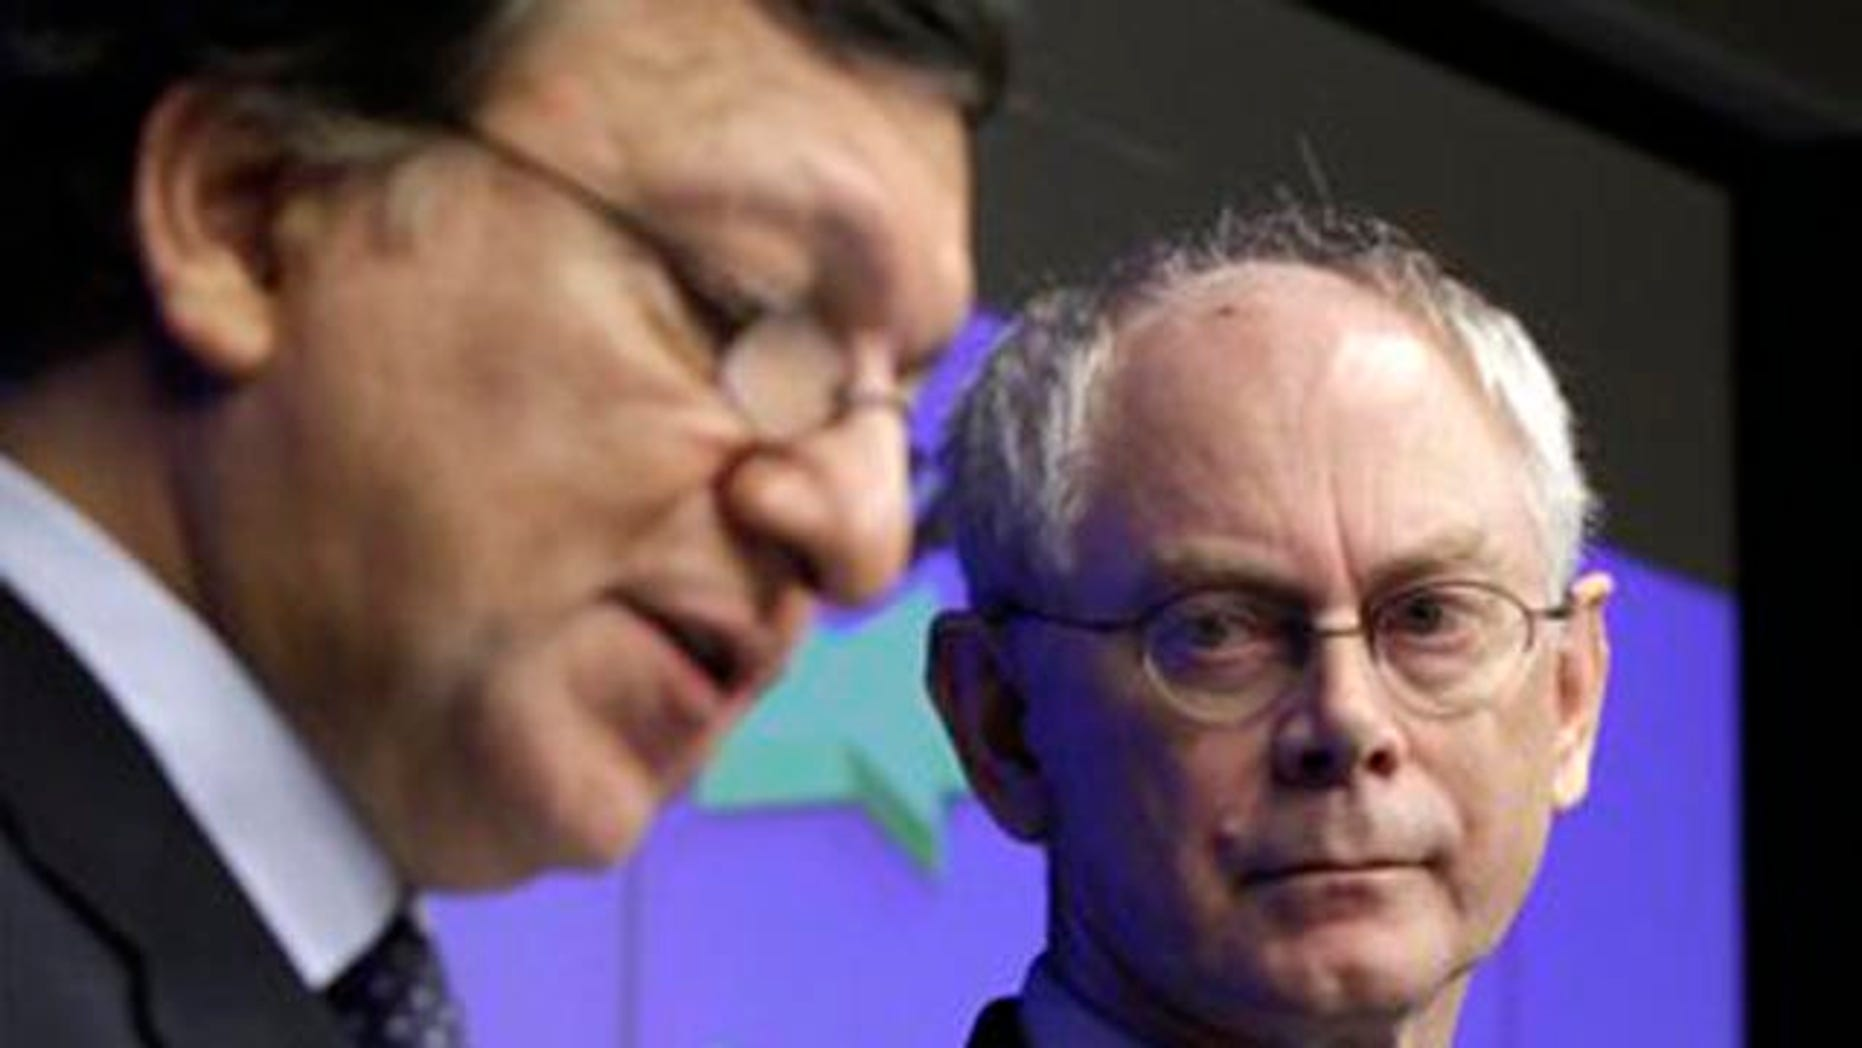 October 27, 2011: European Council President Herman Van Rompuy, right, and European Commission President Jose Manuel Barroso participate in a media conference after an EU summit in Brussels.